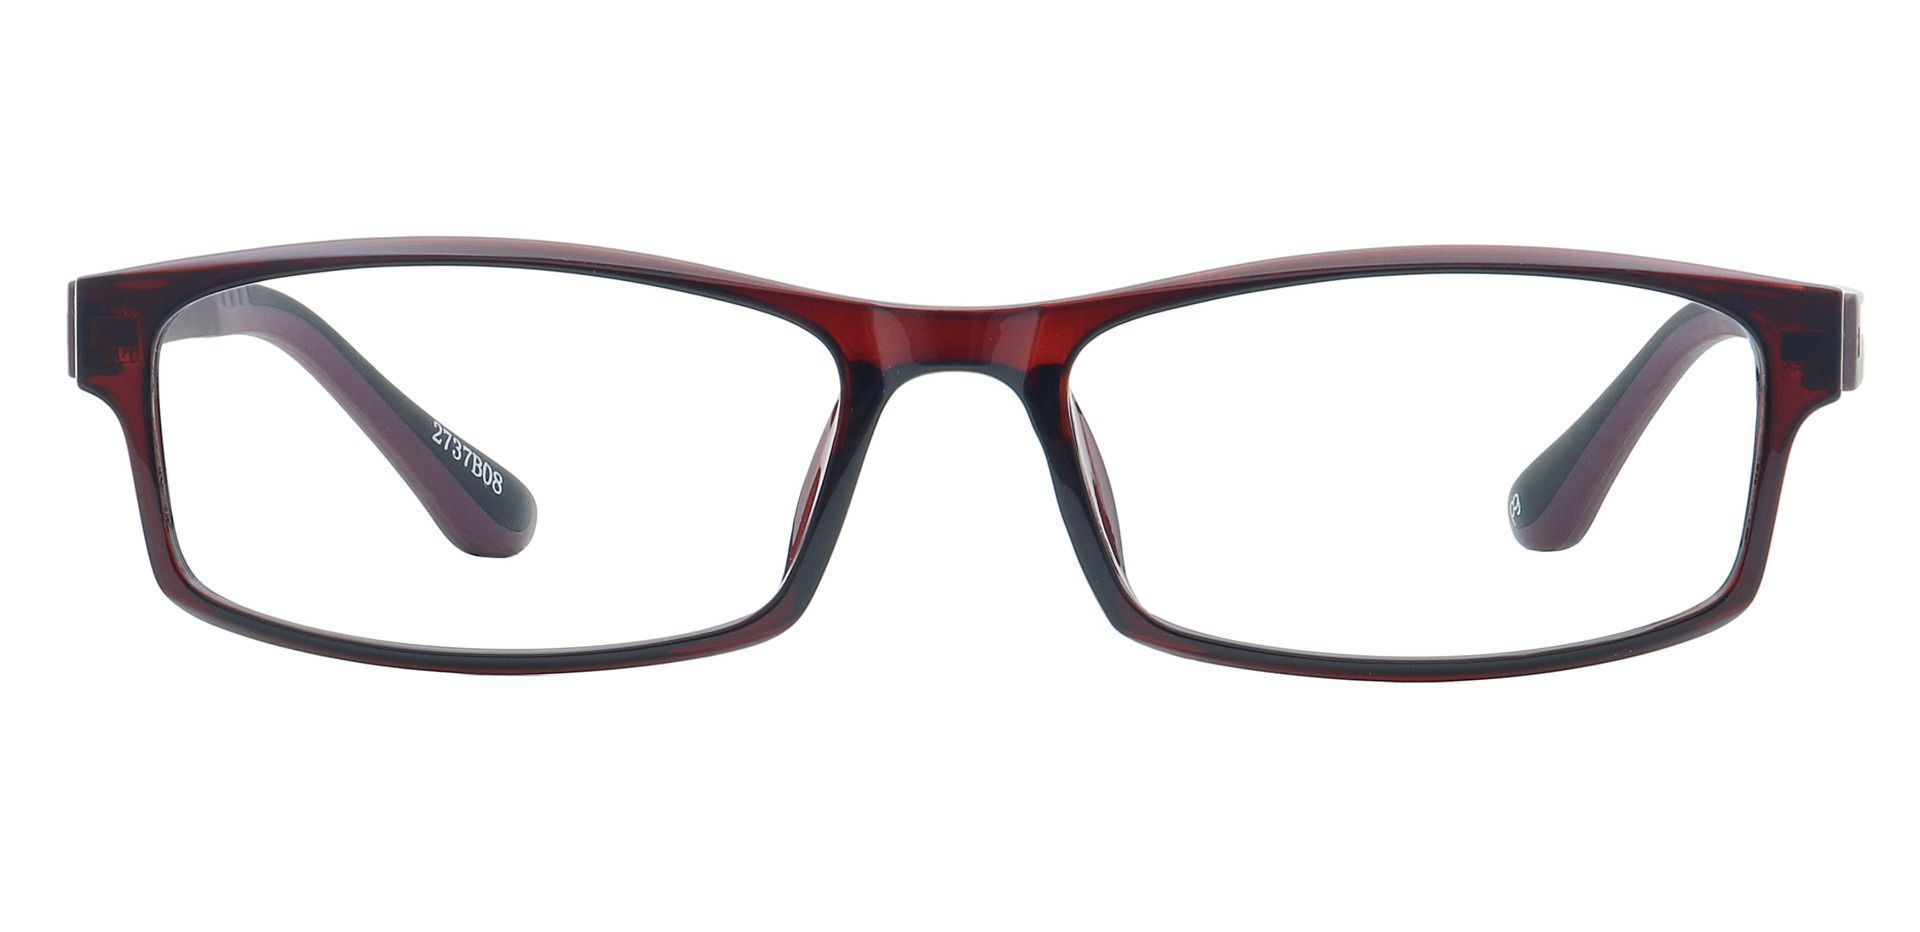 Tatum Rectangle Single Vision Glasses - Brown